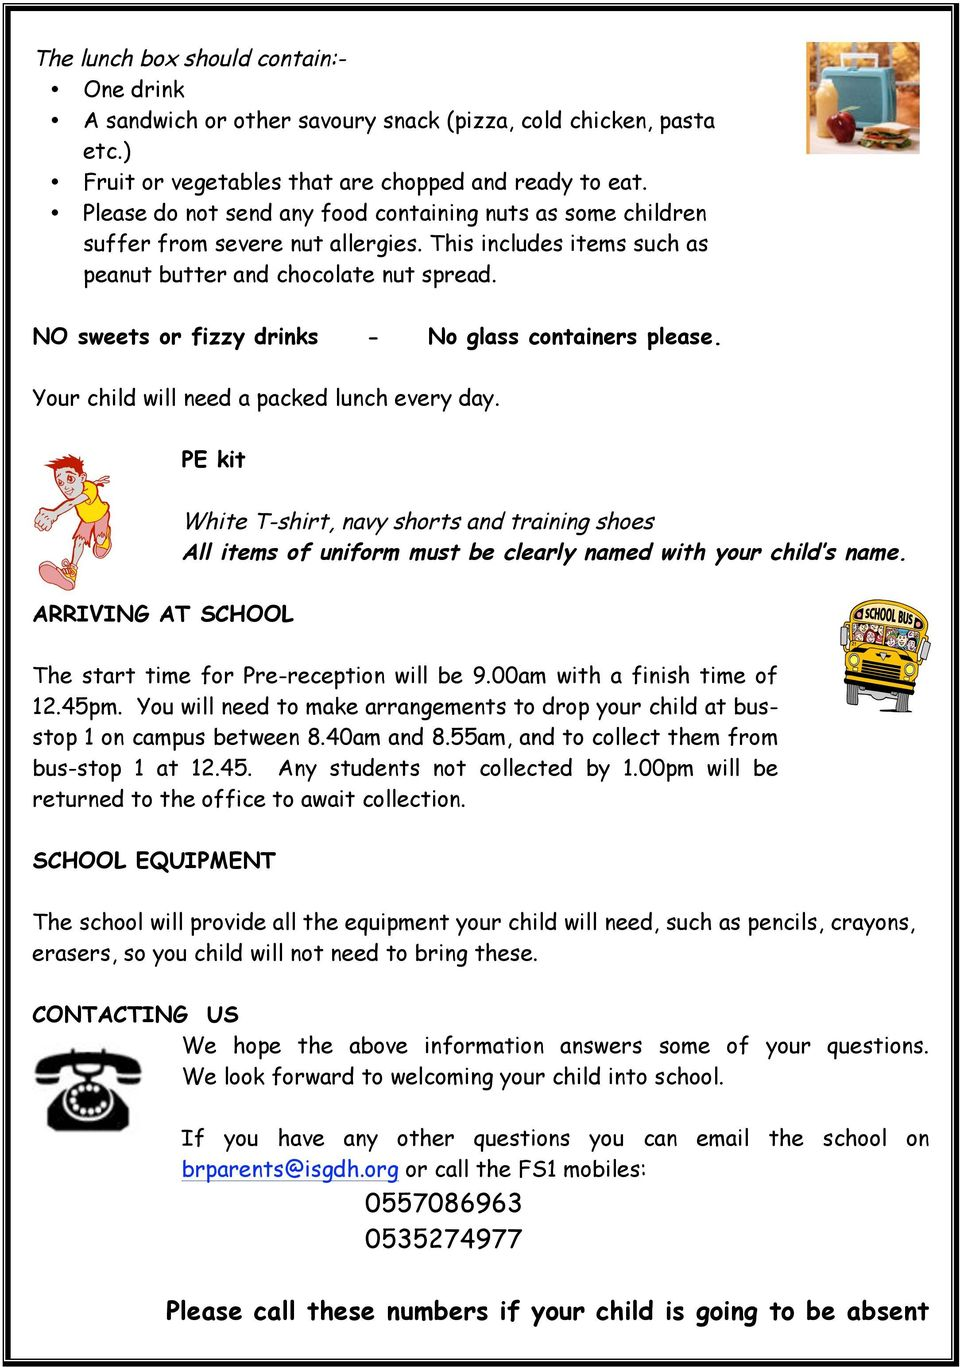 NO sweets or fizzy drinks - No glass containers please. Your child will need a packed lunch every day.